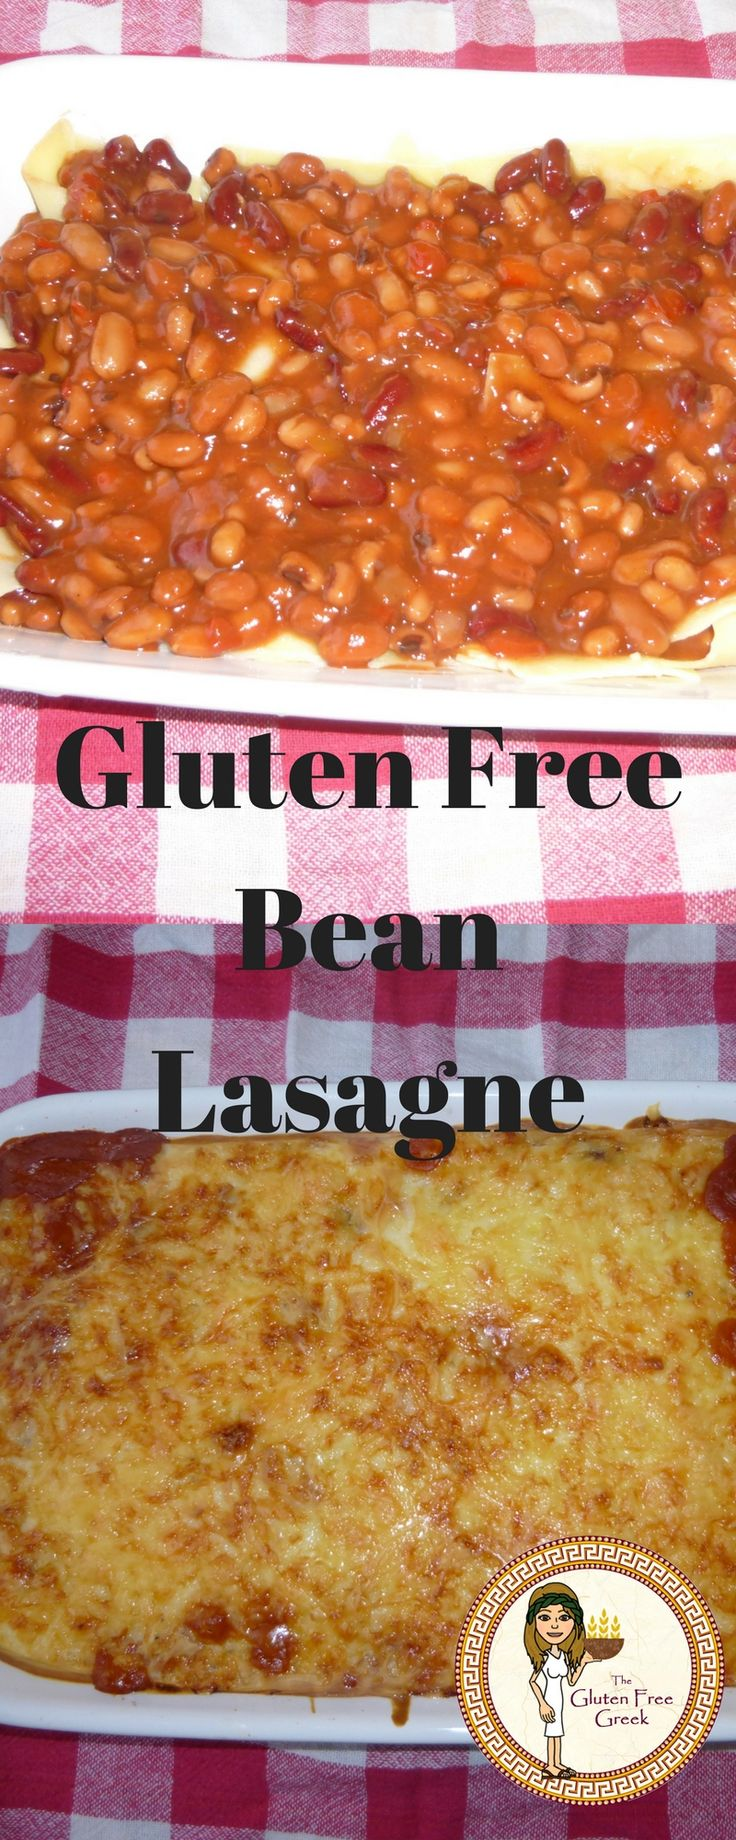 Easy gluten free bean lasagne recipe! Check out my blog for the recipe.